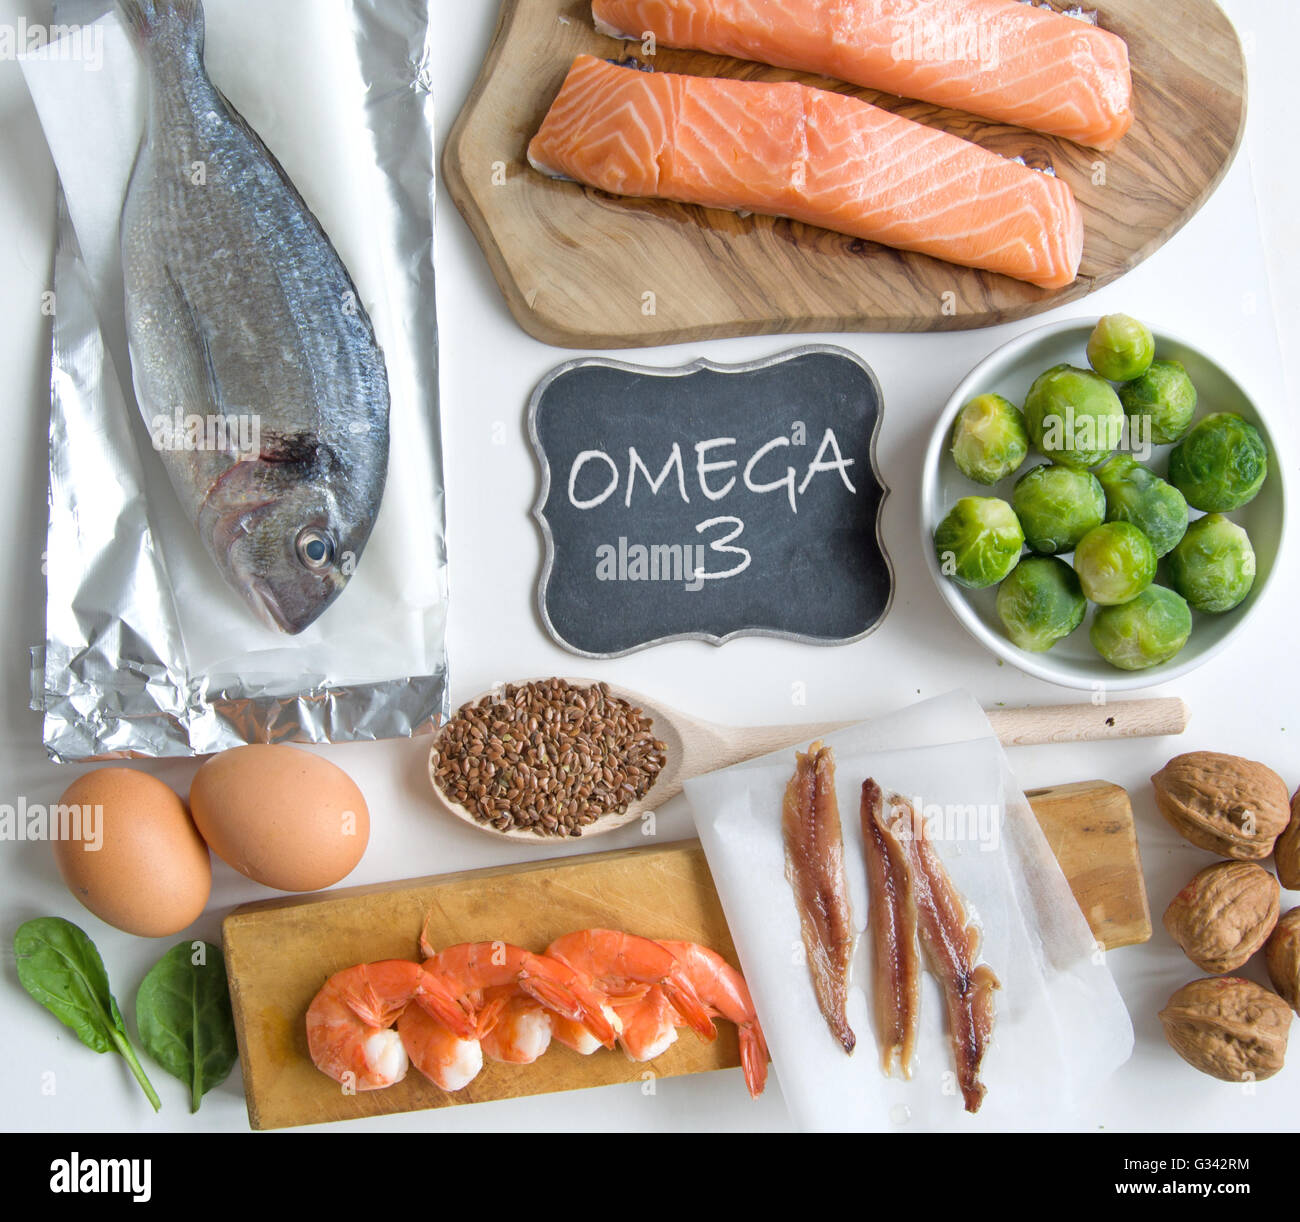 Omega 9 Fatty Acids High Resolution Stock Photography and Images